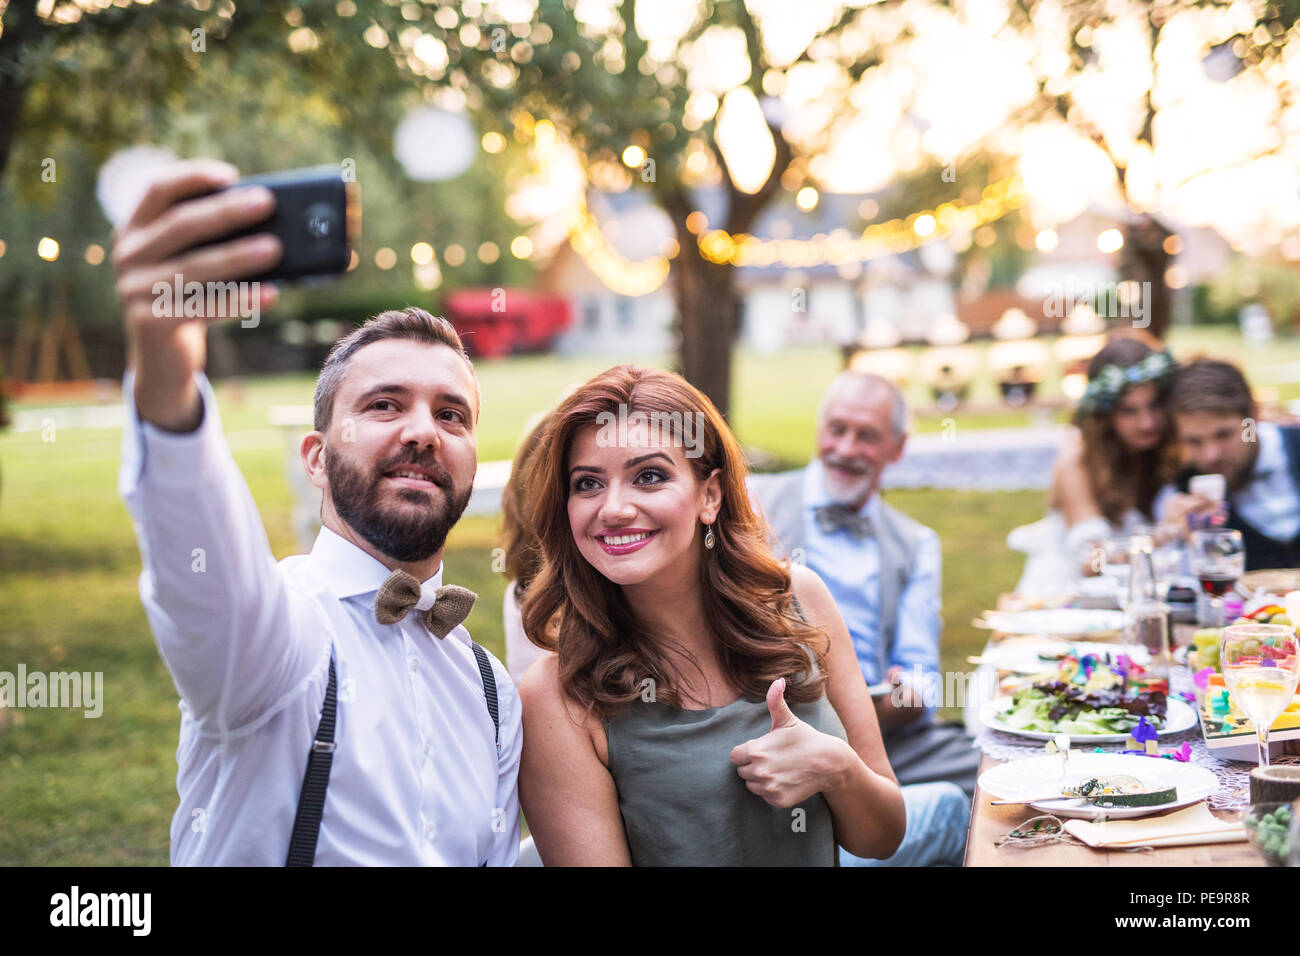 A couple taking selfie at the wedding reception outside in the backyard. Stock Photo